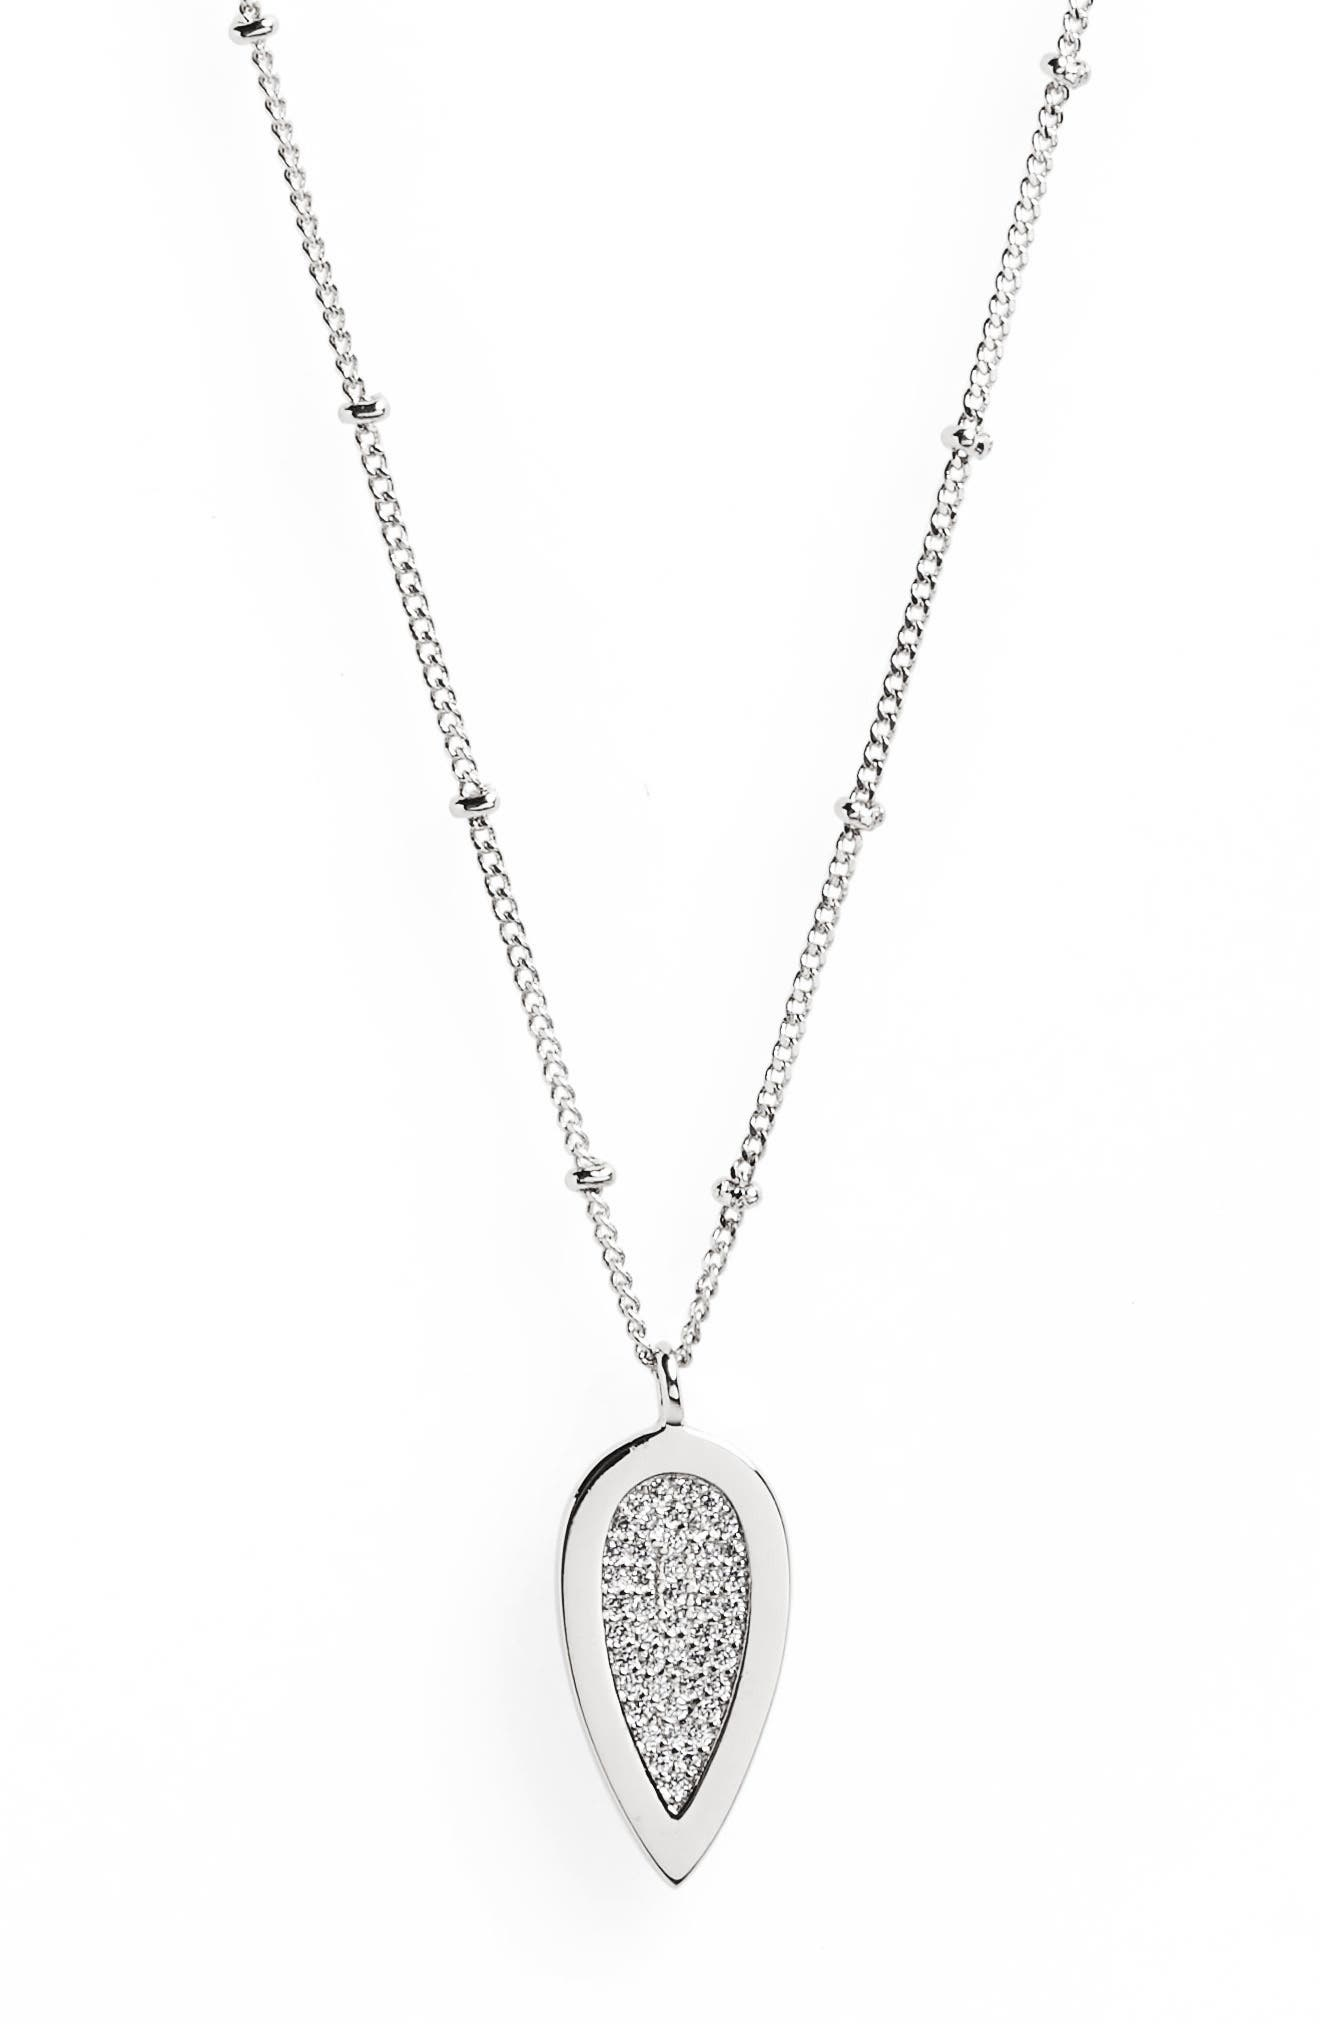 Alternate Image 1 Selected - Melanie Auld Teardrop Pendant Necklace